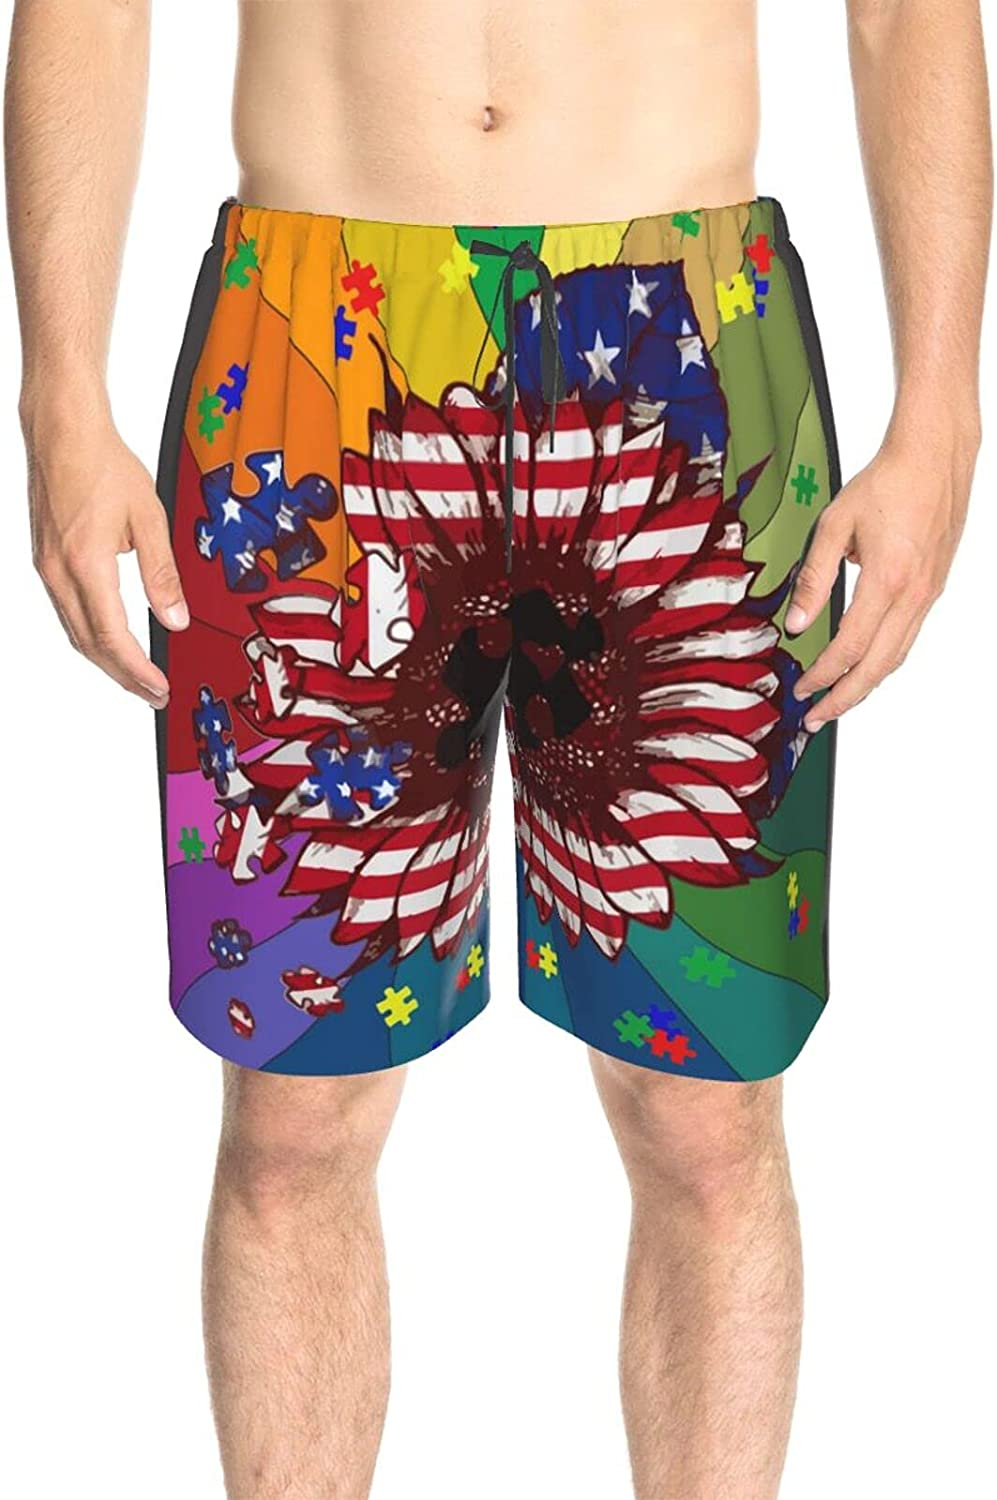 JINJUELS Mens Bathing Suits American Flower Flag Puzzle Swim Board Shorts Quick Dry Cool Swimwear Bathing Suits with Lining